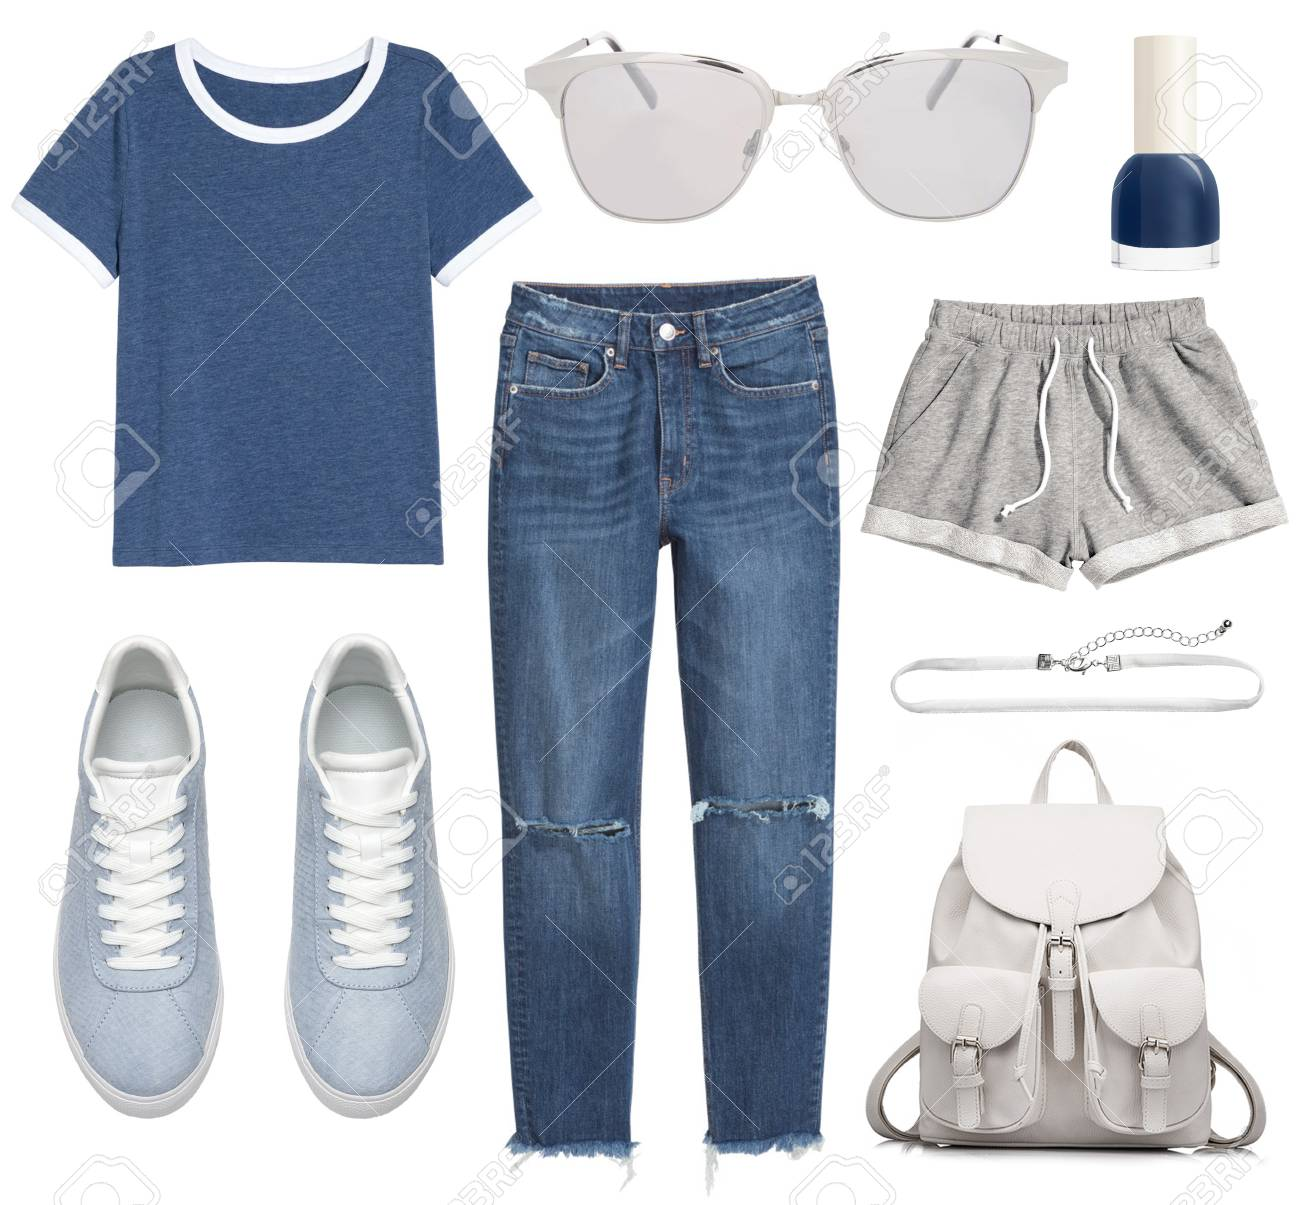 Image result for Stylish Clothes For Women